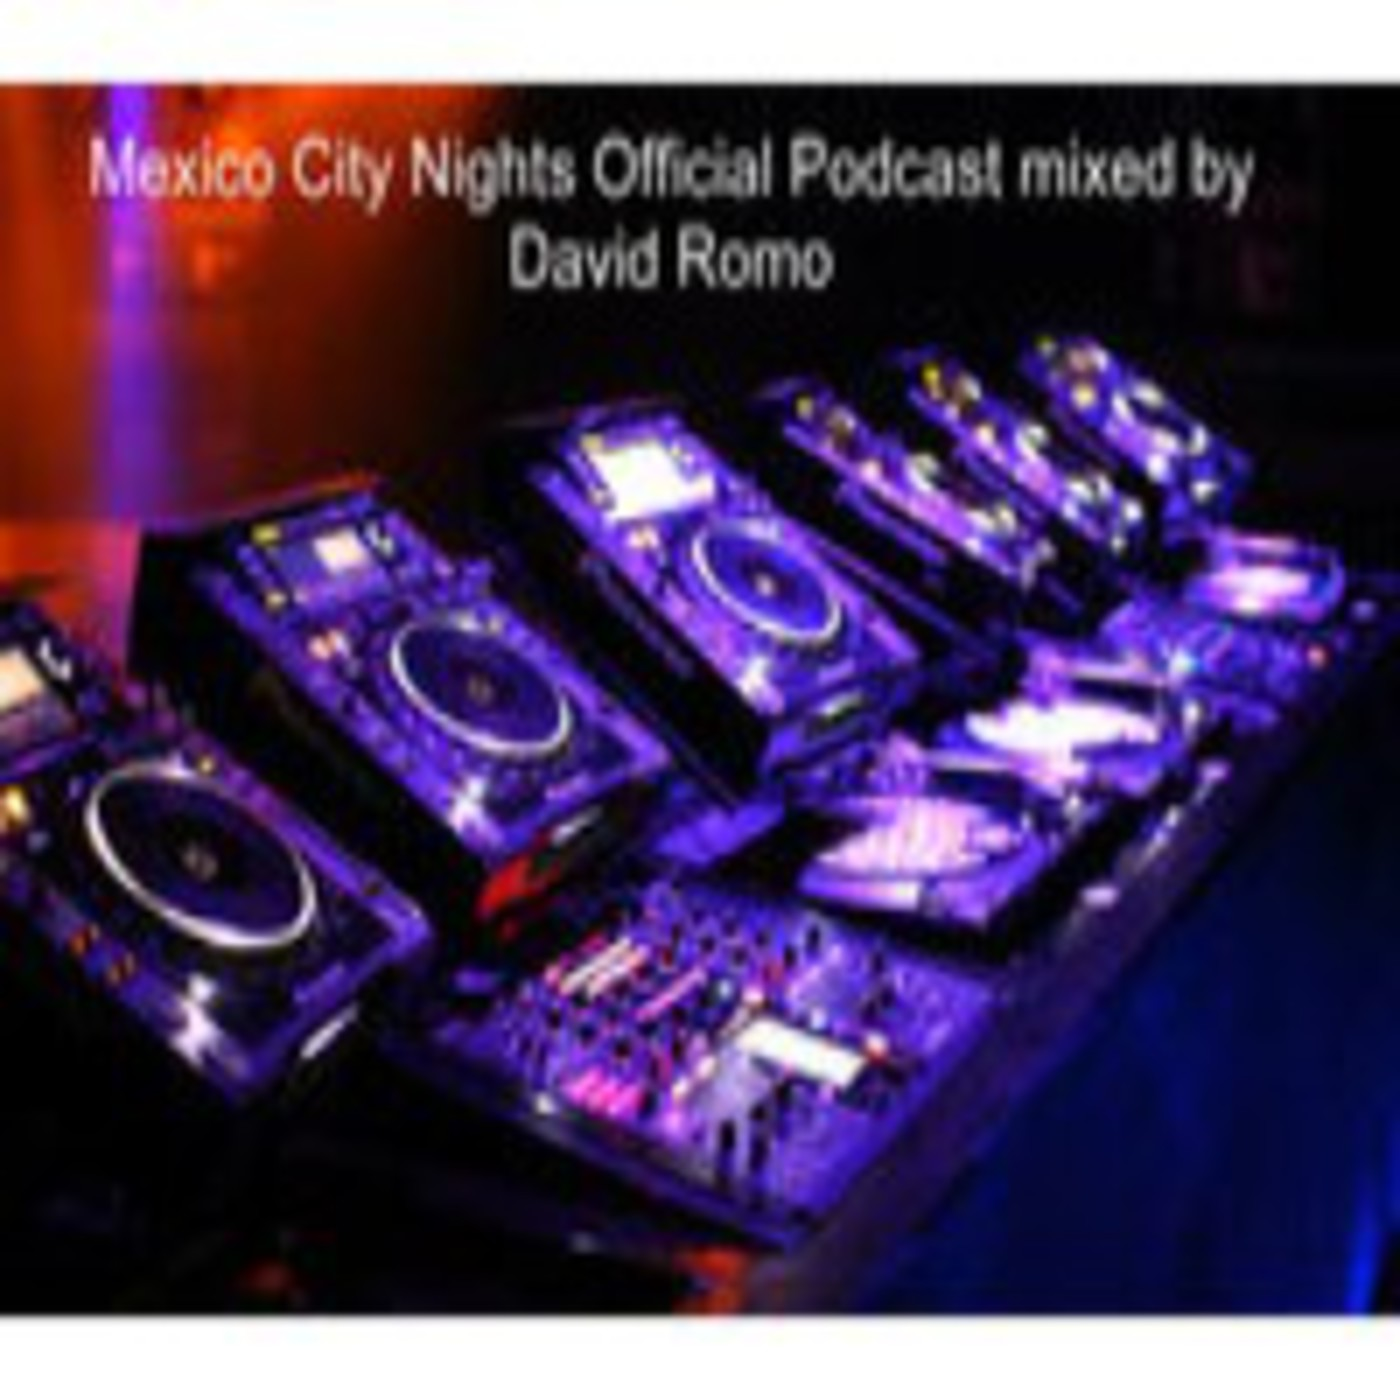 <![CDATA[Mexico City Nights Official Podcast ]]>